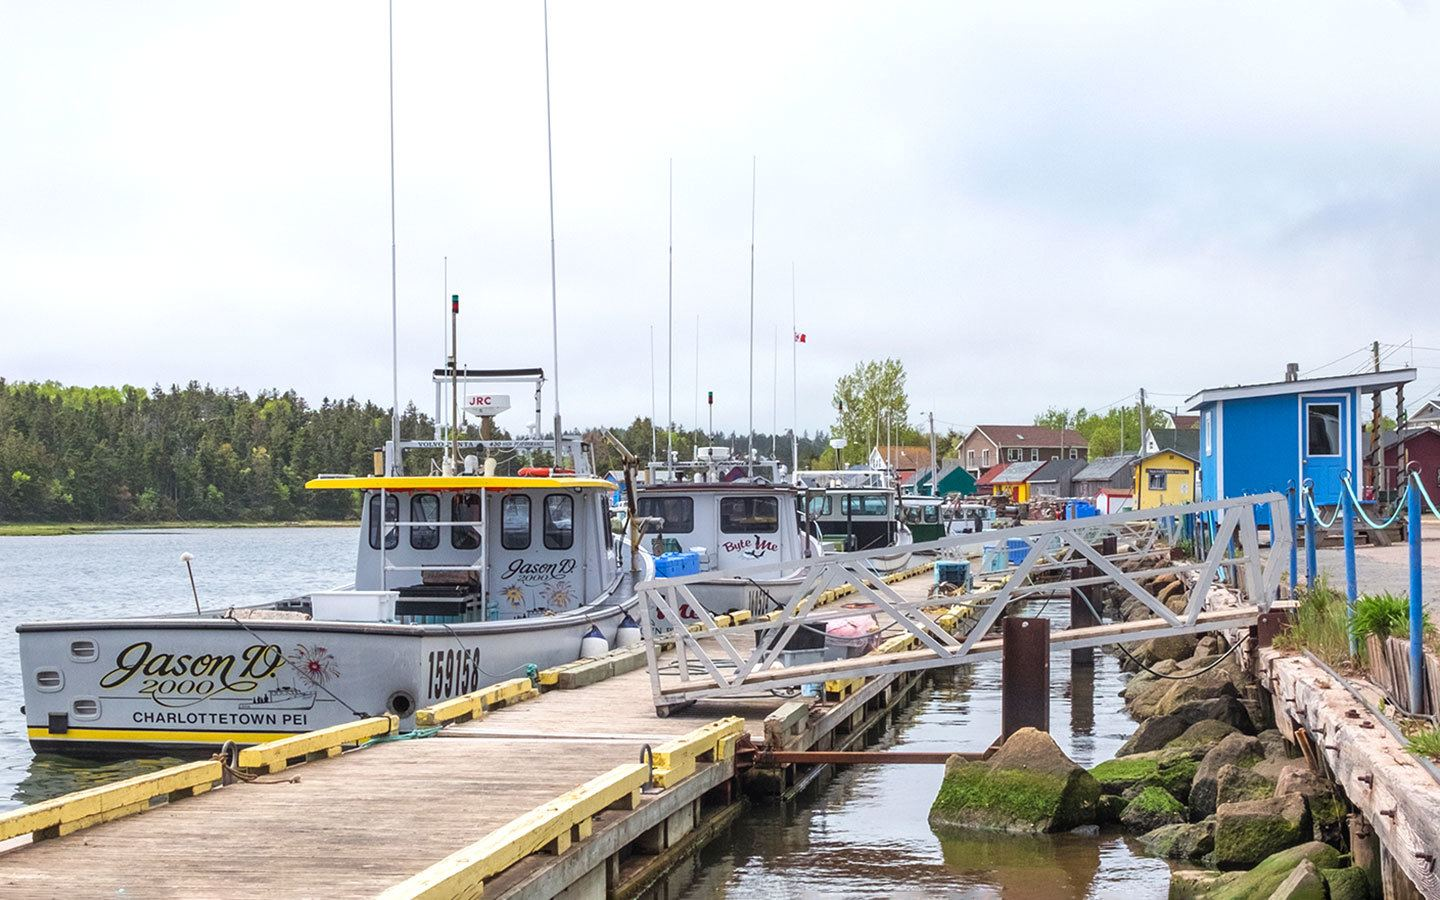 Colourful fishing villages in Prince Edward Island, Canada